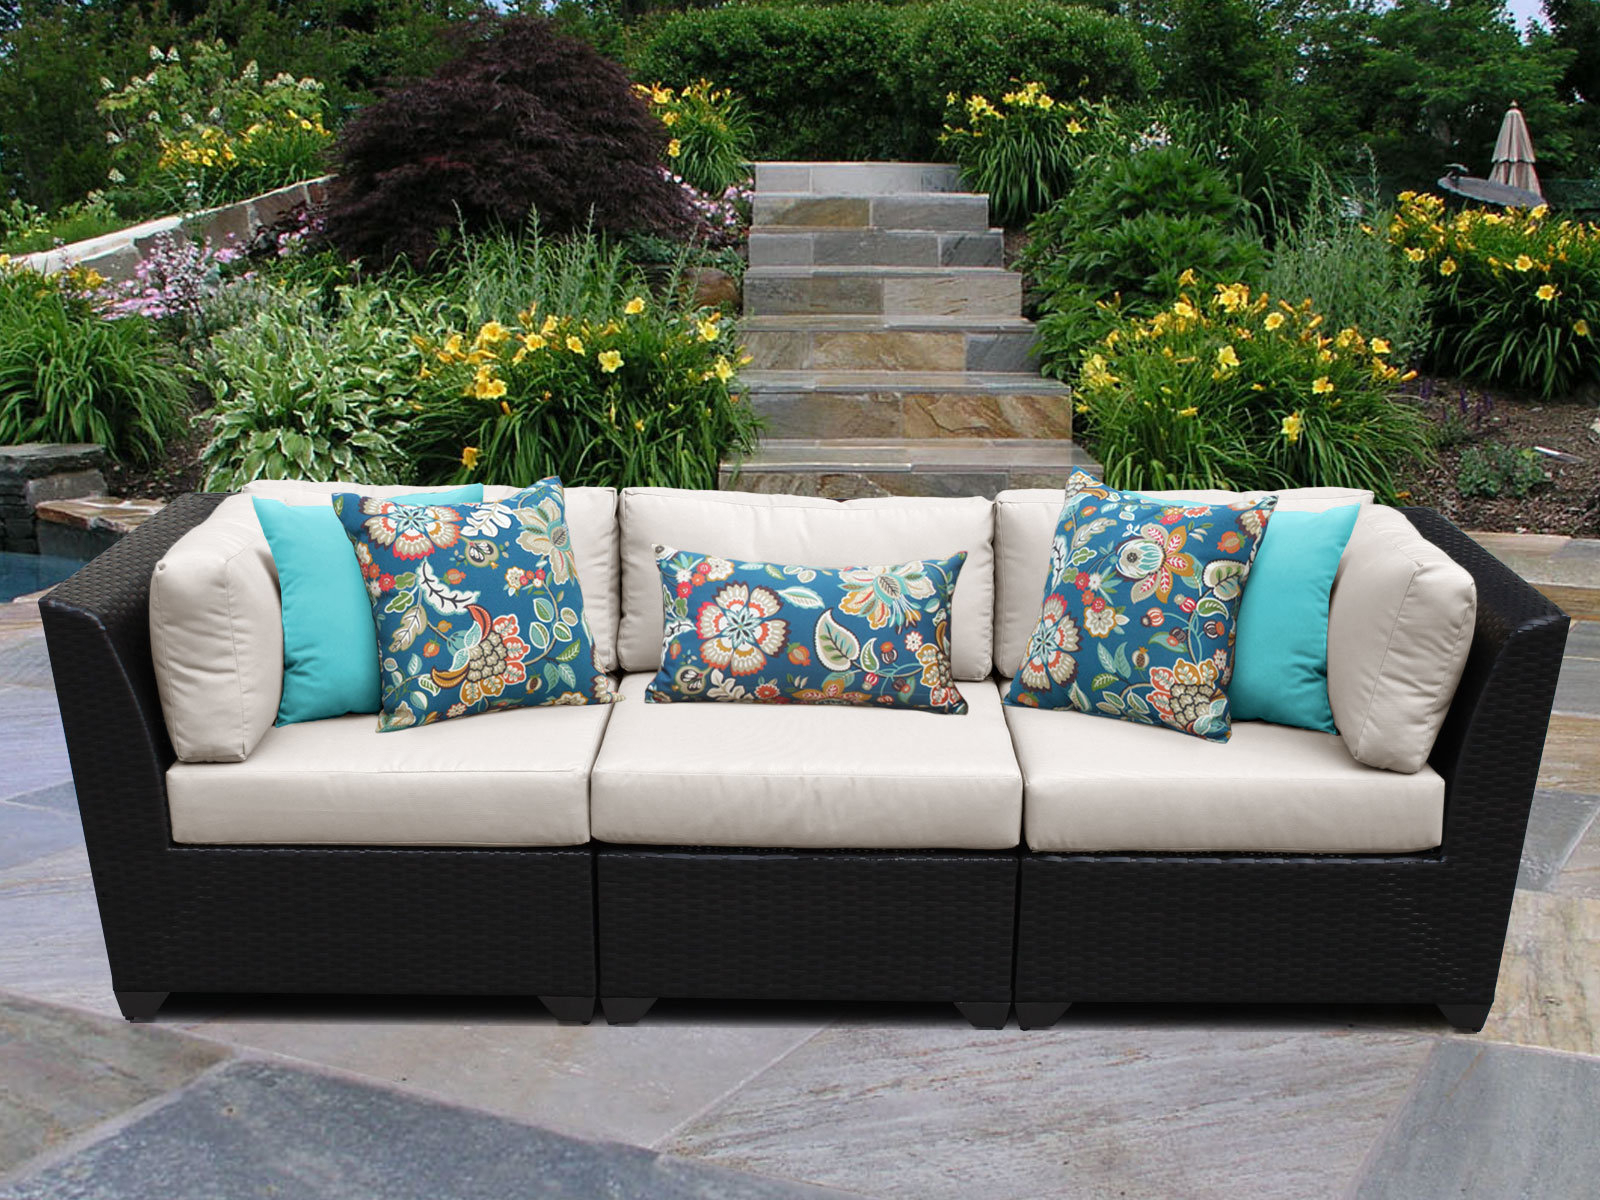 Recent Camak Patio Sofas With Cushions Inside Camak Patio Sofa With Cushions (Gallery 1 of 20)